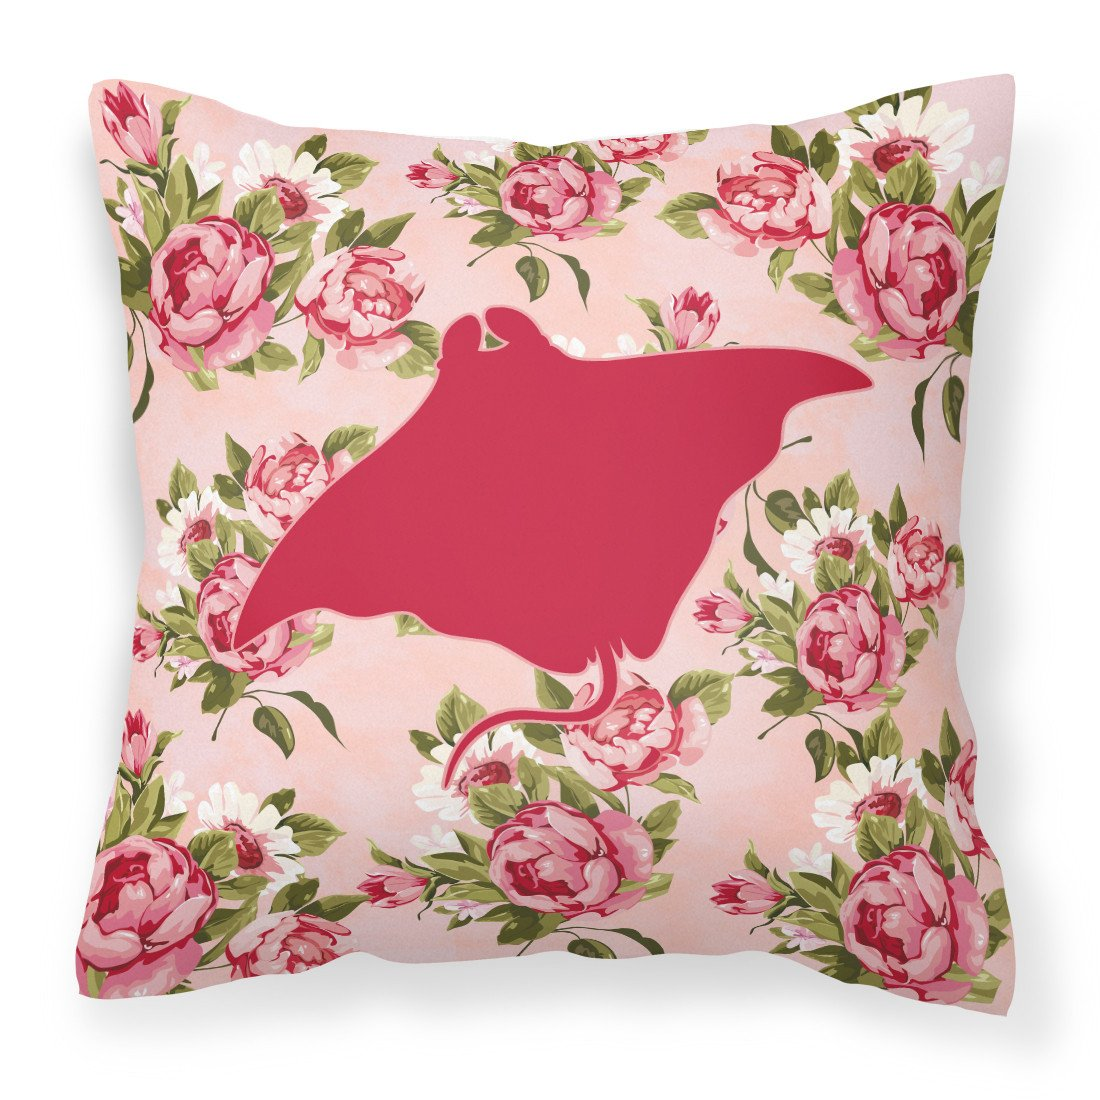 Manta ray Shabby Chic Pink Roses  Fabric Decorative Pillow BB1014-RS-PK-PW1414 by Caroline's Treasures